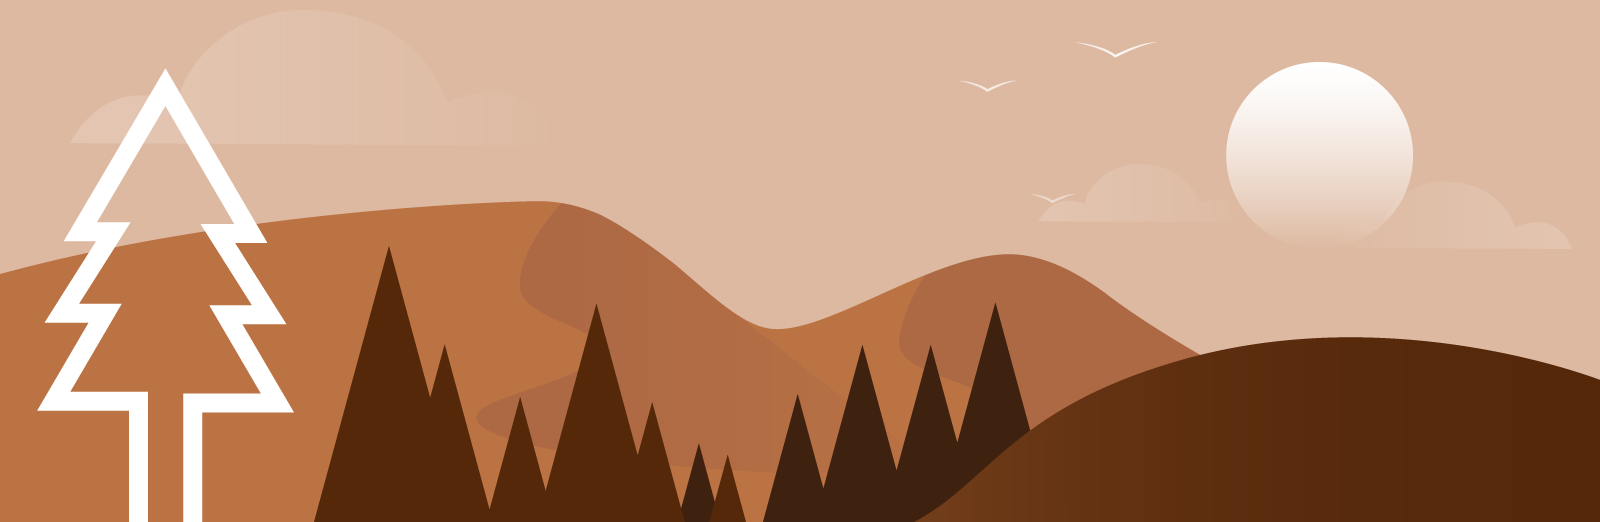 A background illustration of hills, sky and the Pine Design Studio logo.